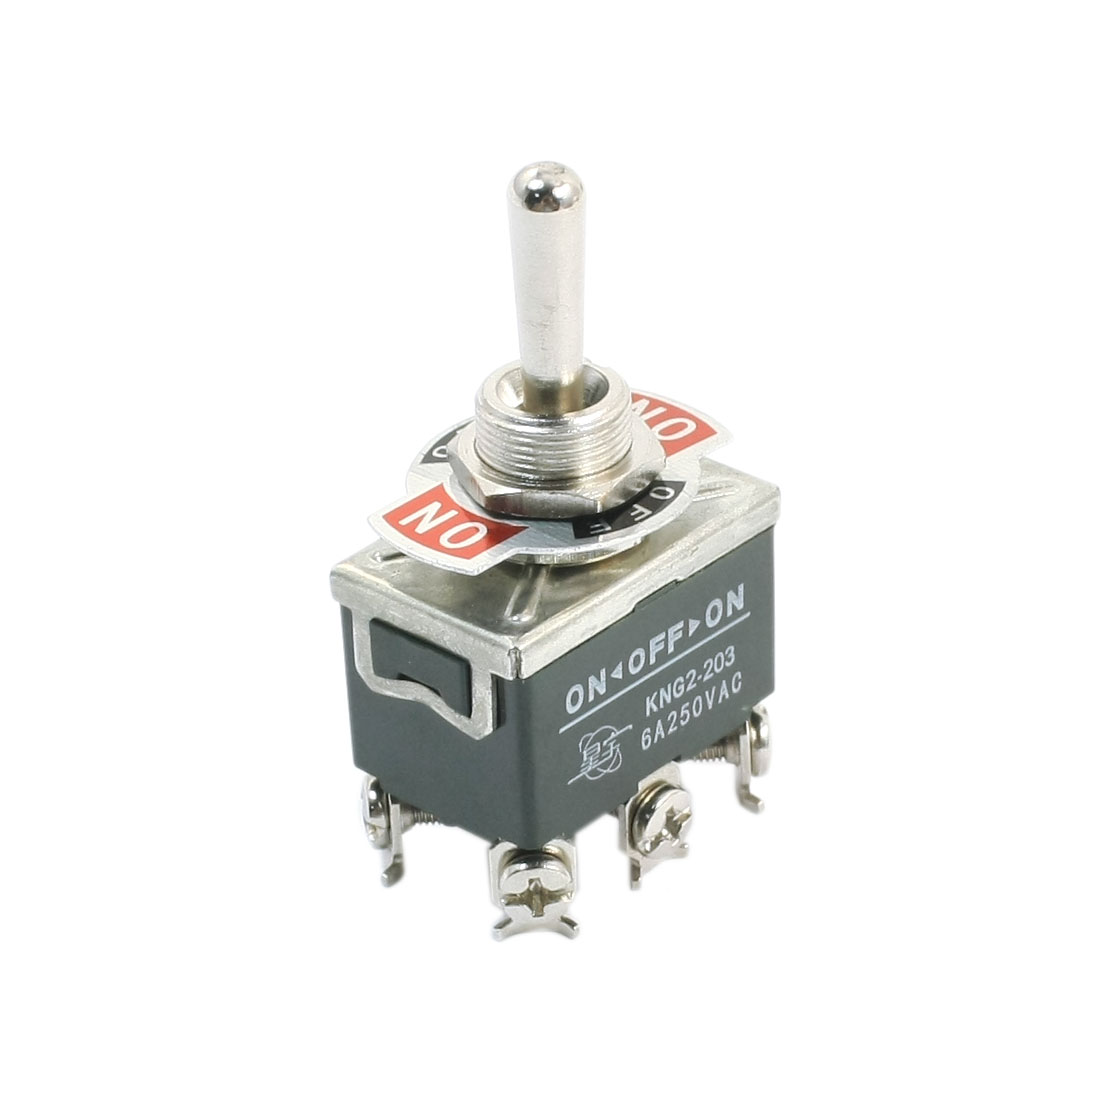 AC 250V 6A 6 Screw Terminals ON/Off/ ON DPDT Latching Toggle Switch